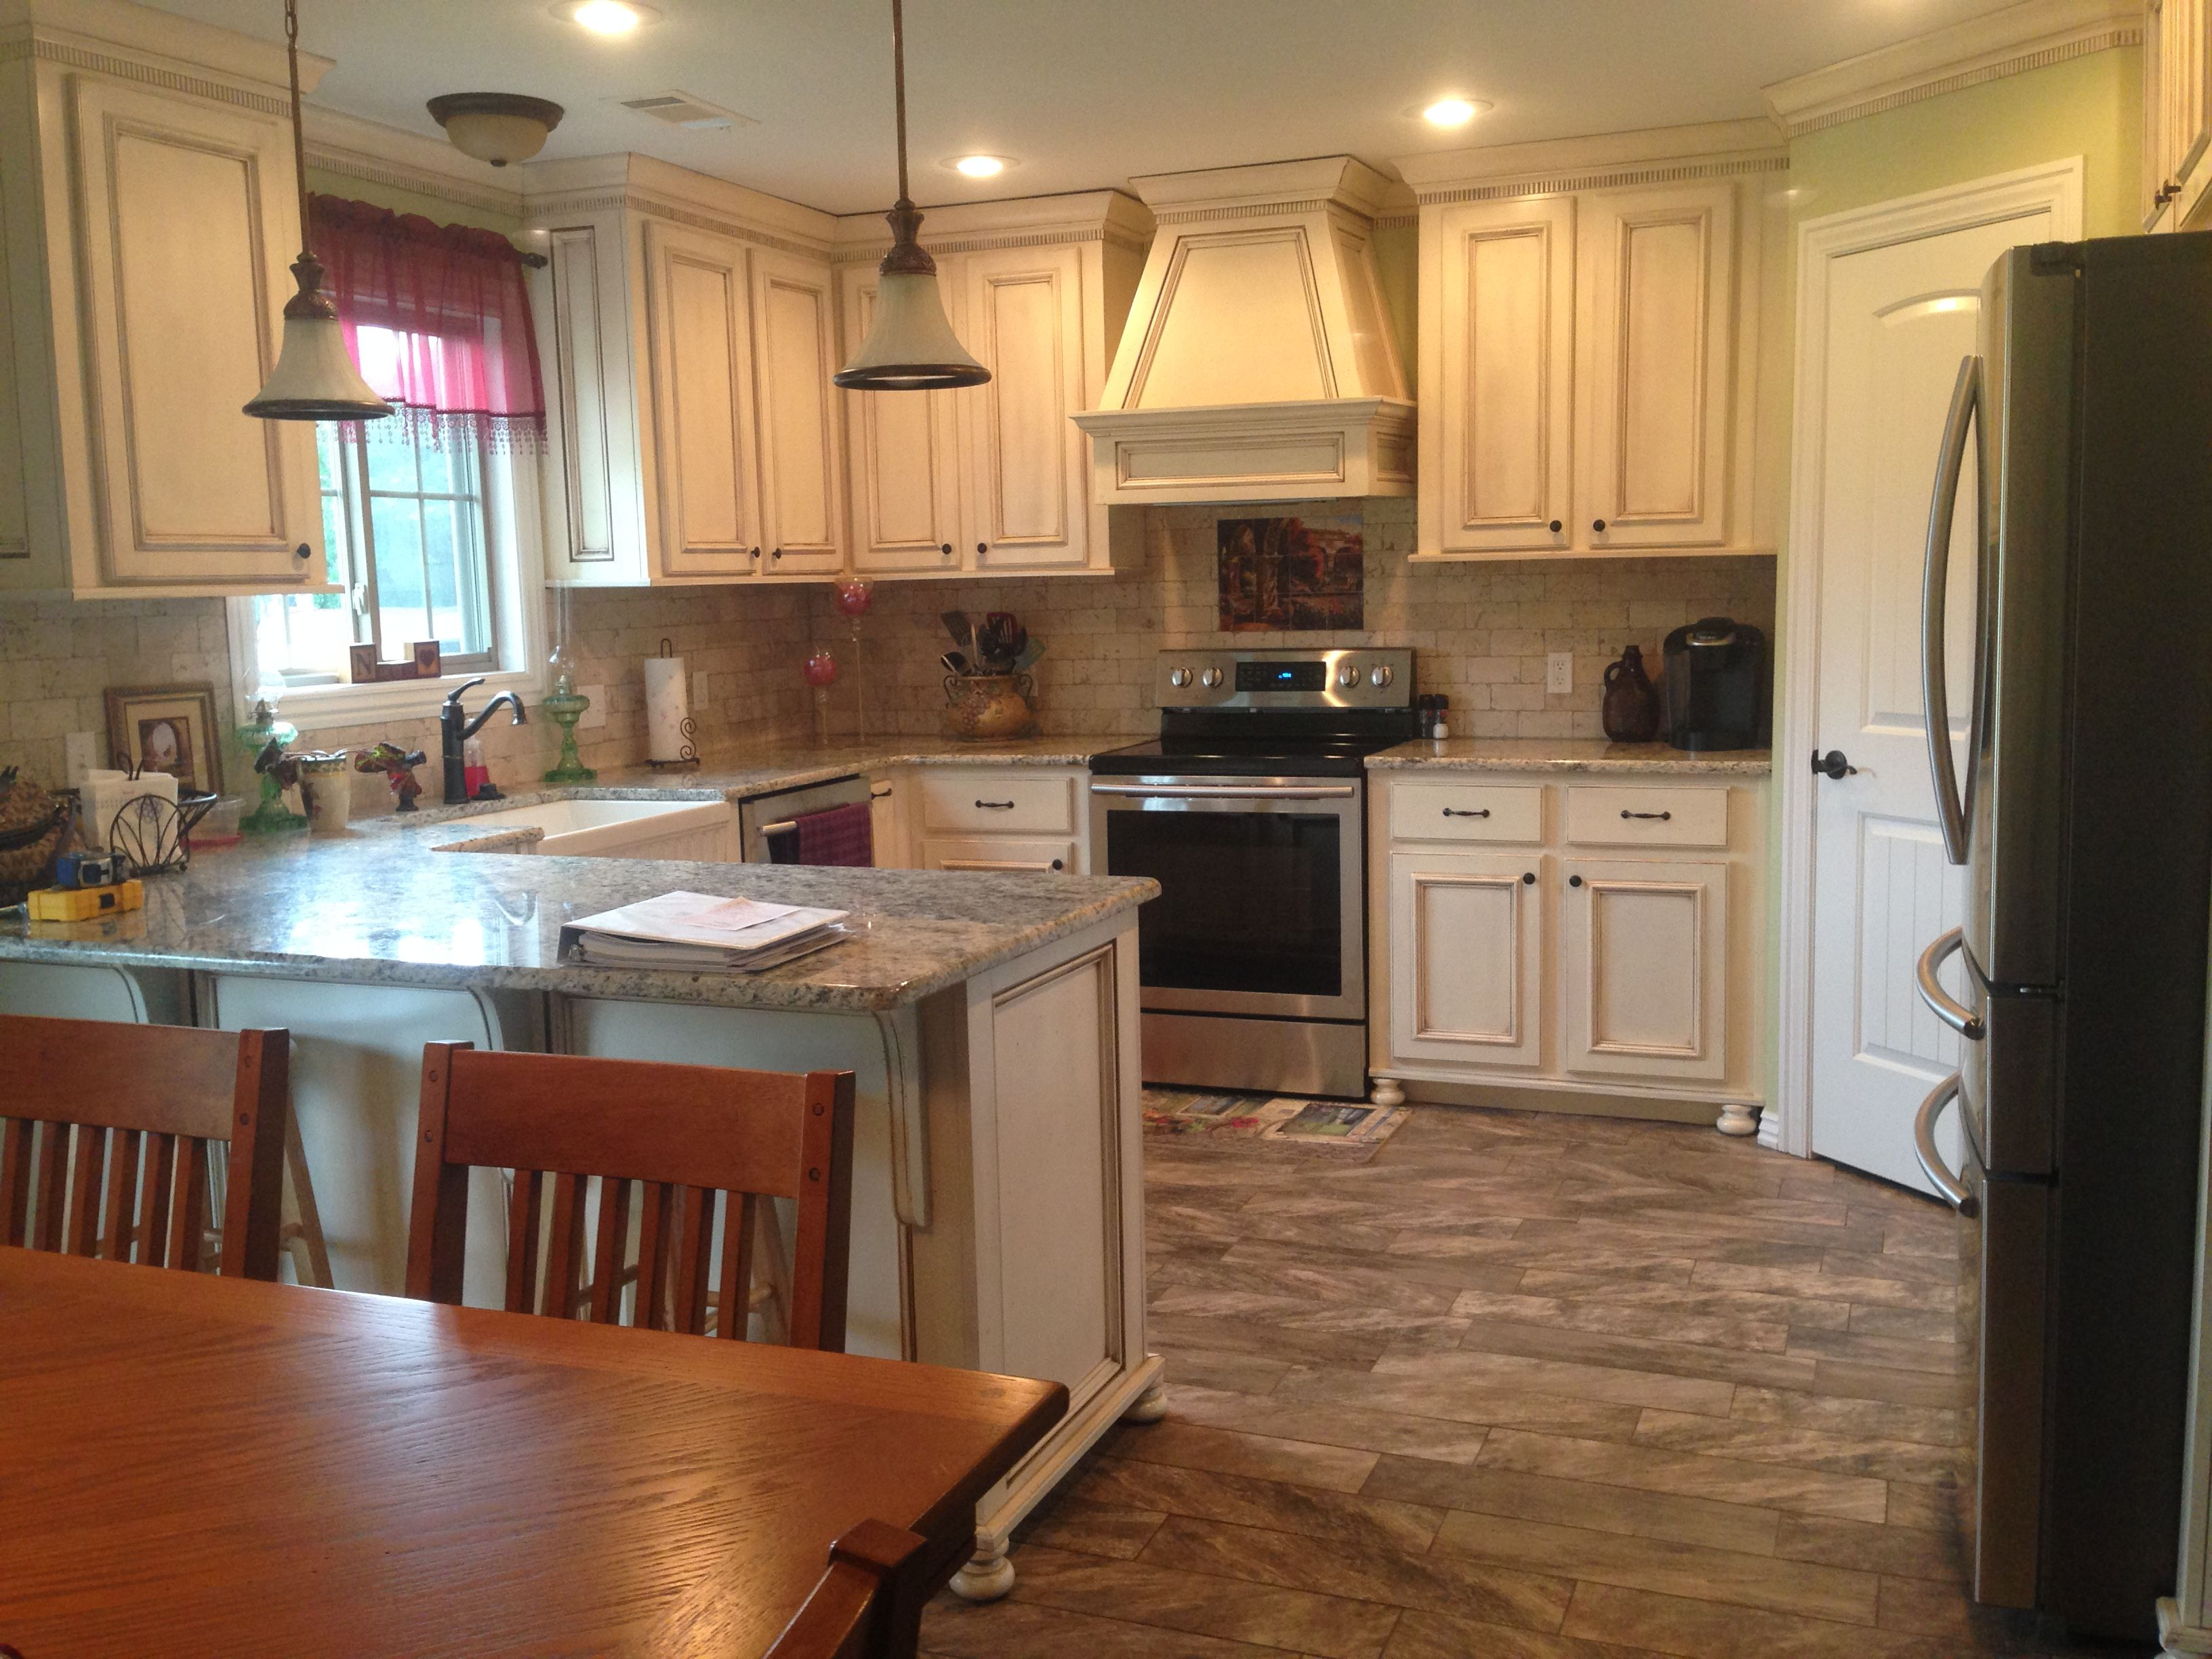 new custom home. kitchen cabinets are custom made. beautiful